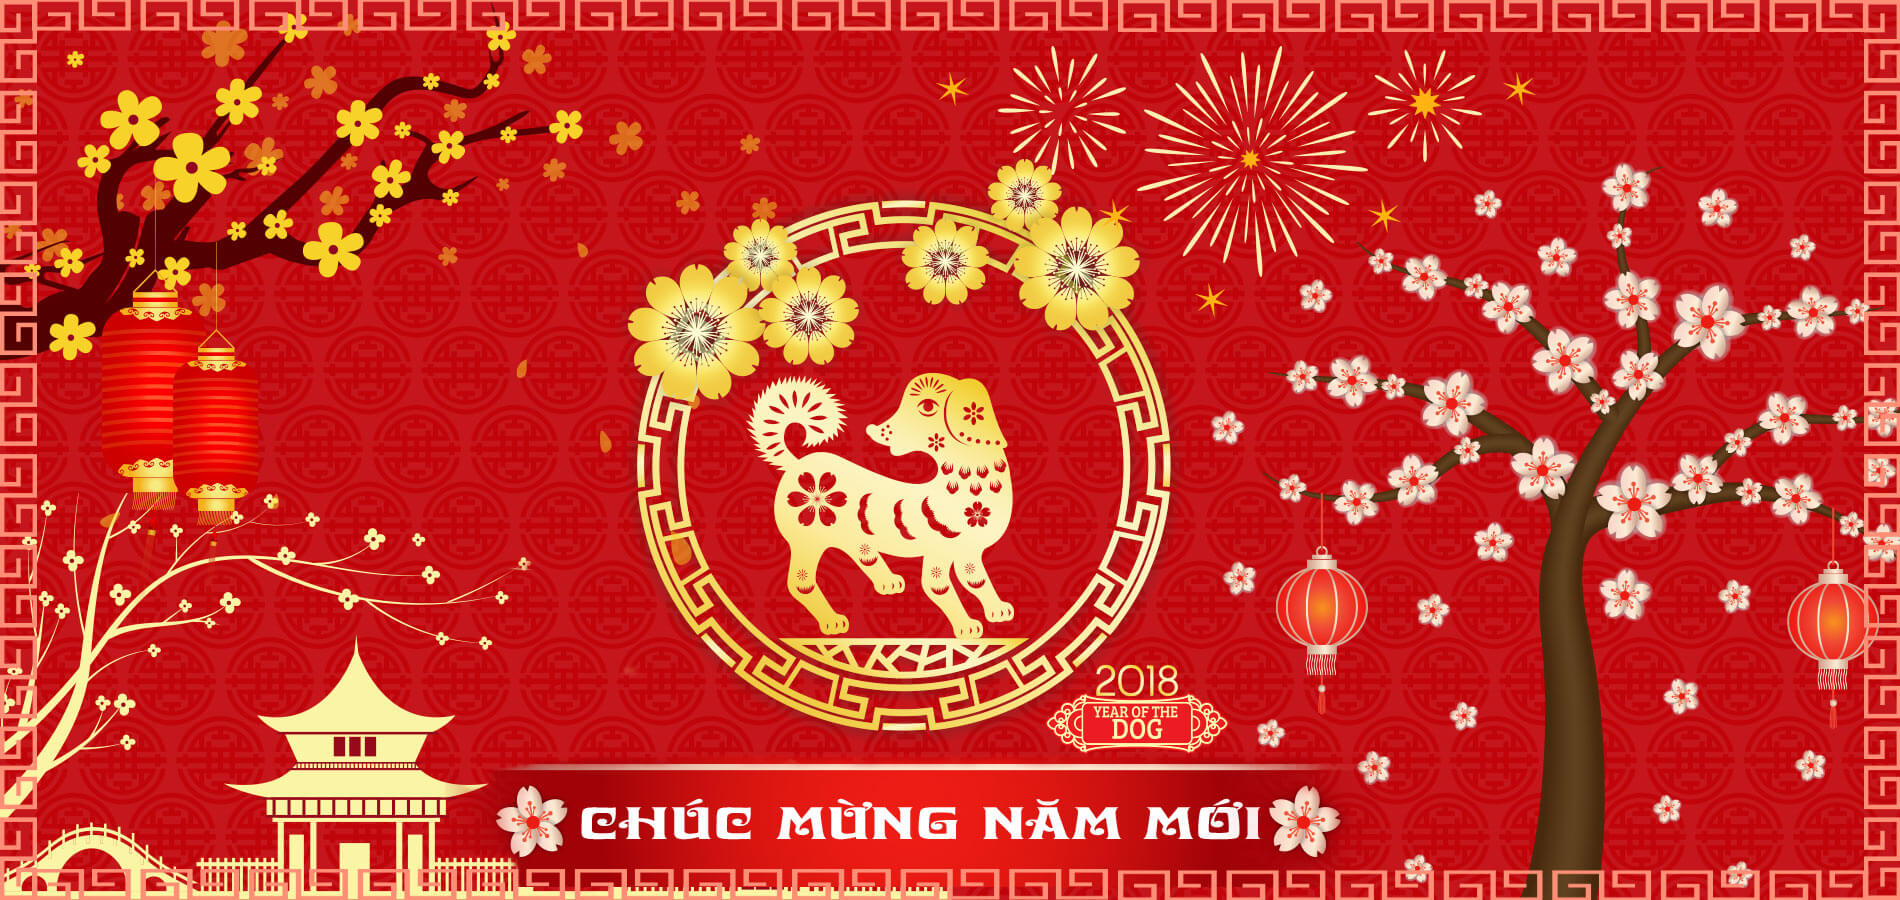 Happy Lunar New Year 2018!